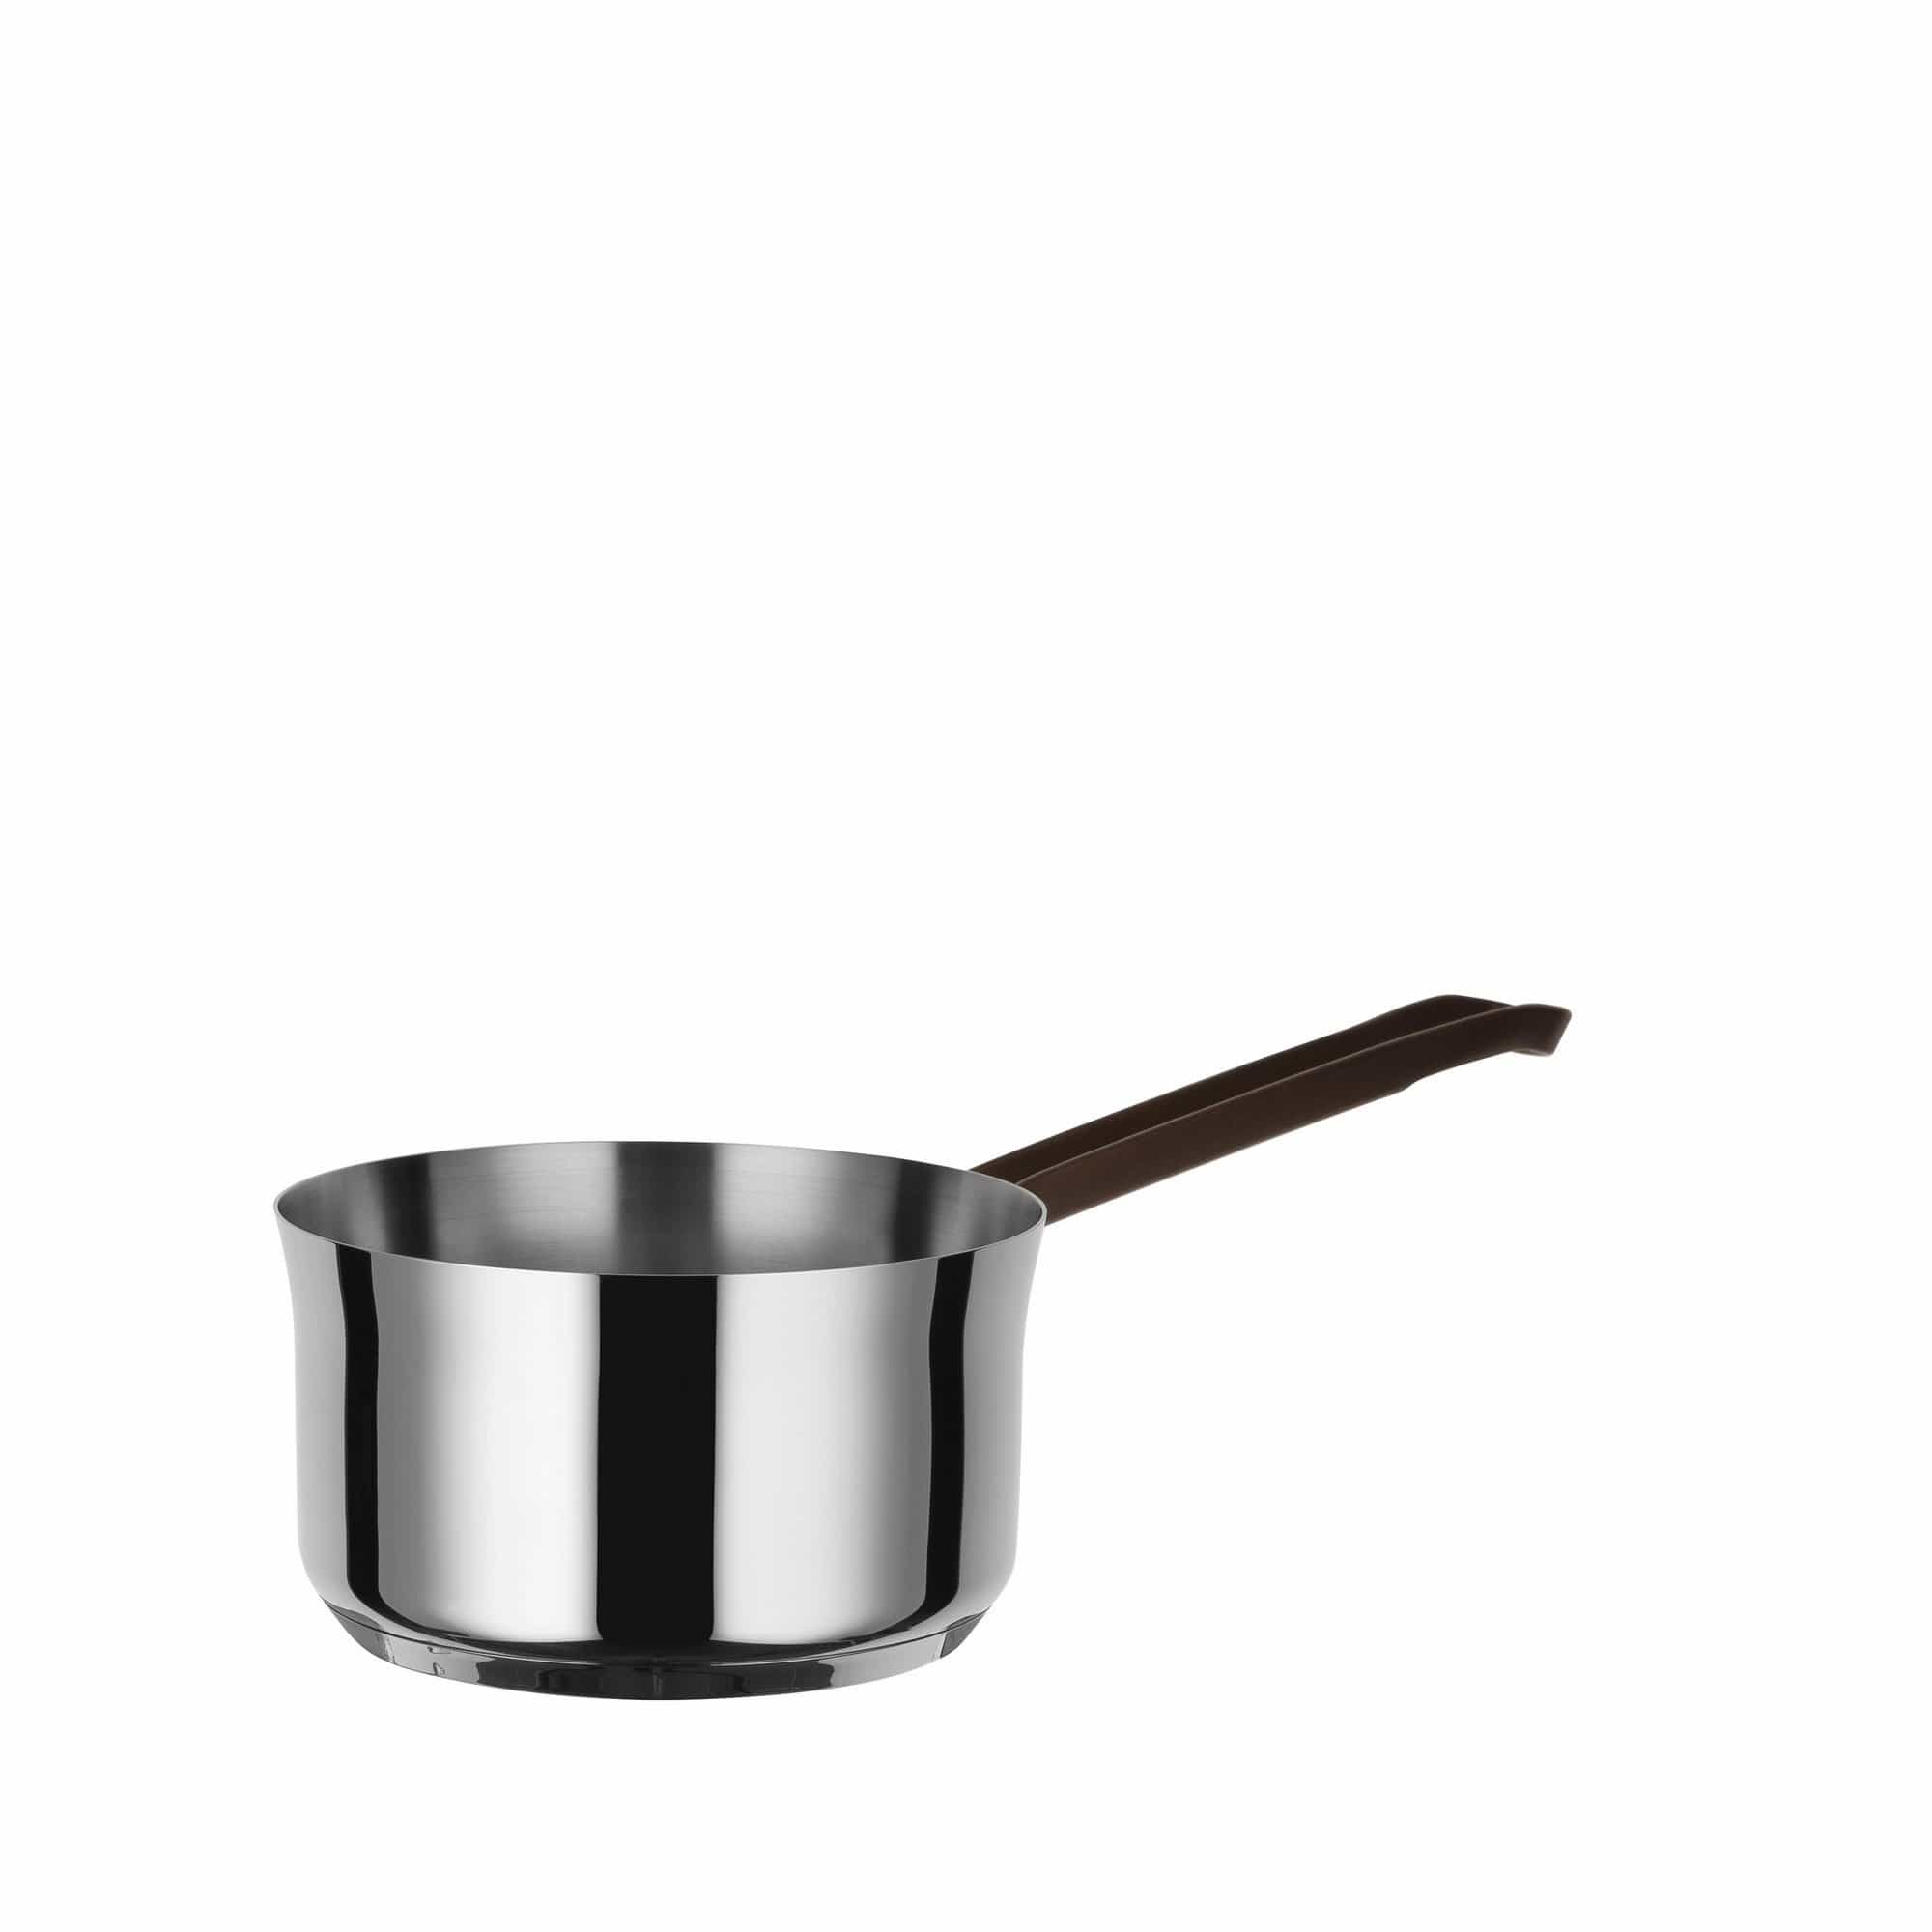 Alessi Alessi Edo Saucepan - Available in 2 Sizes 14cm PU105/14